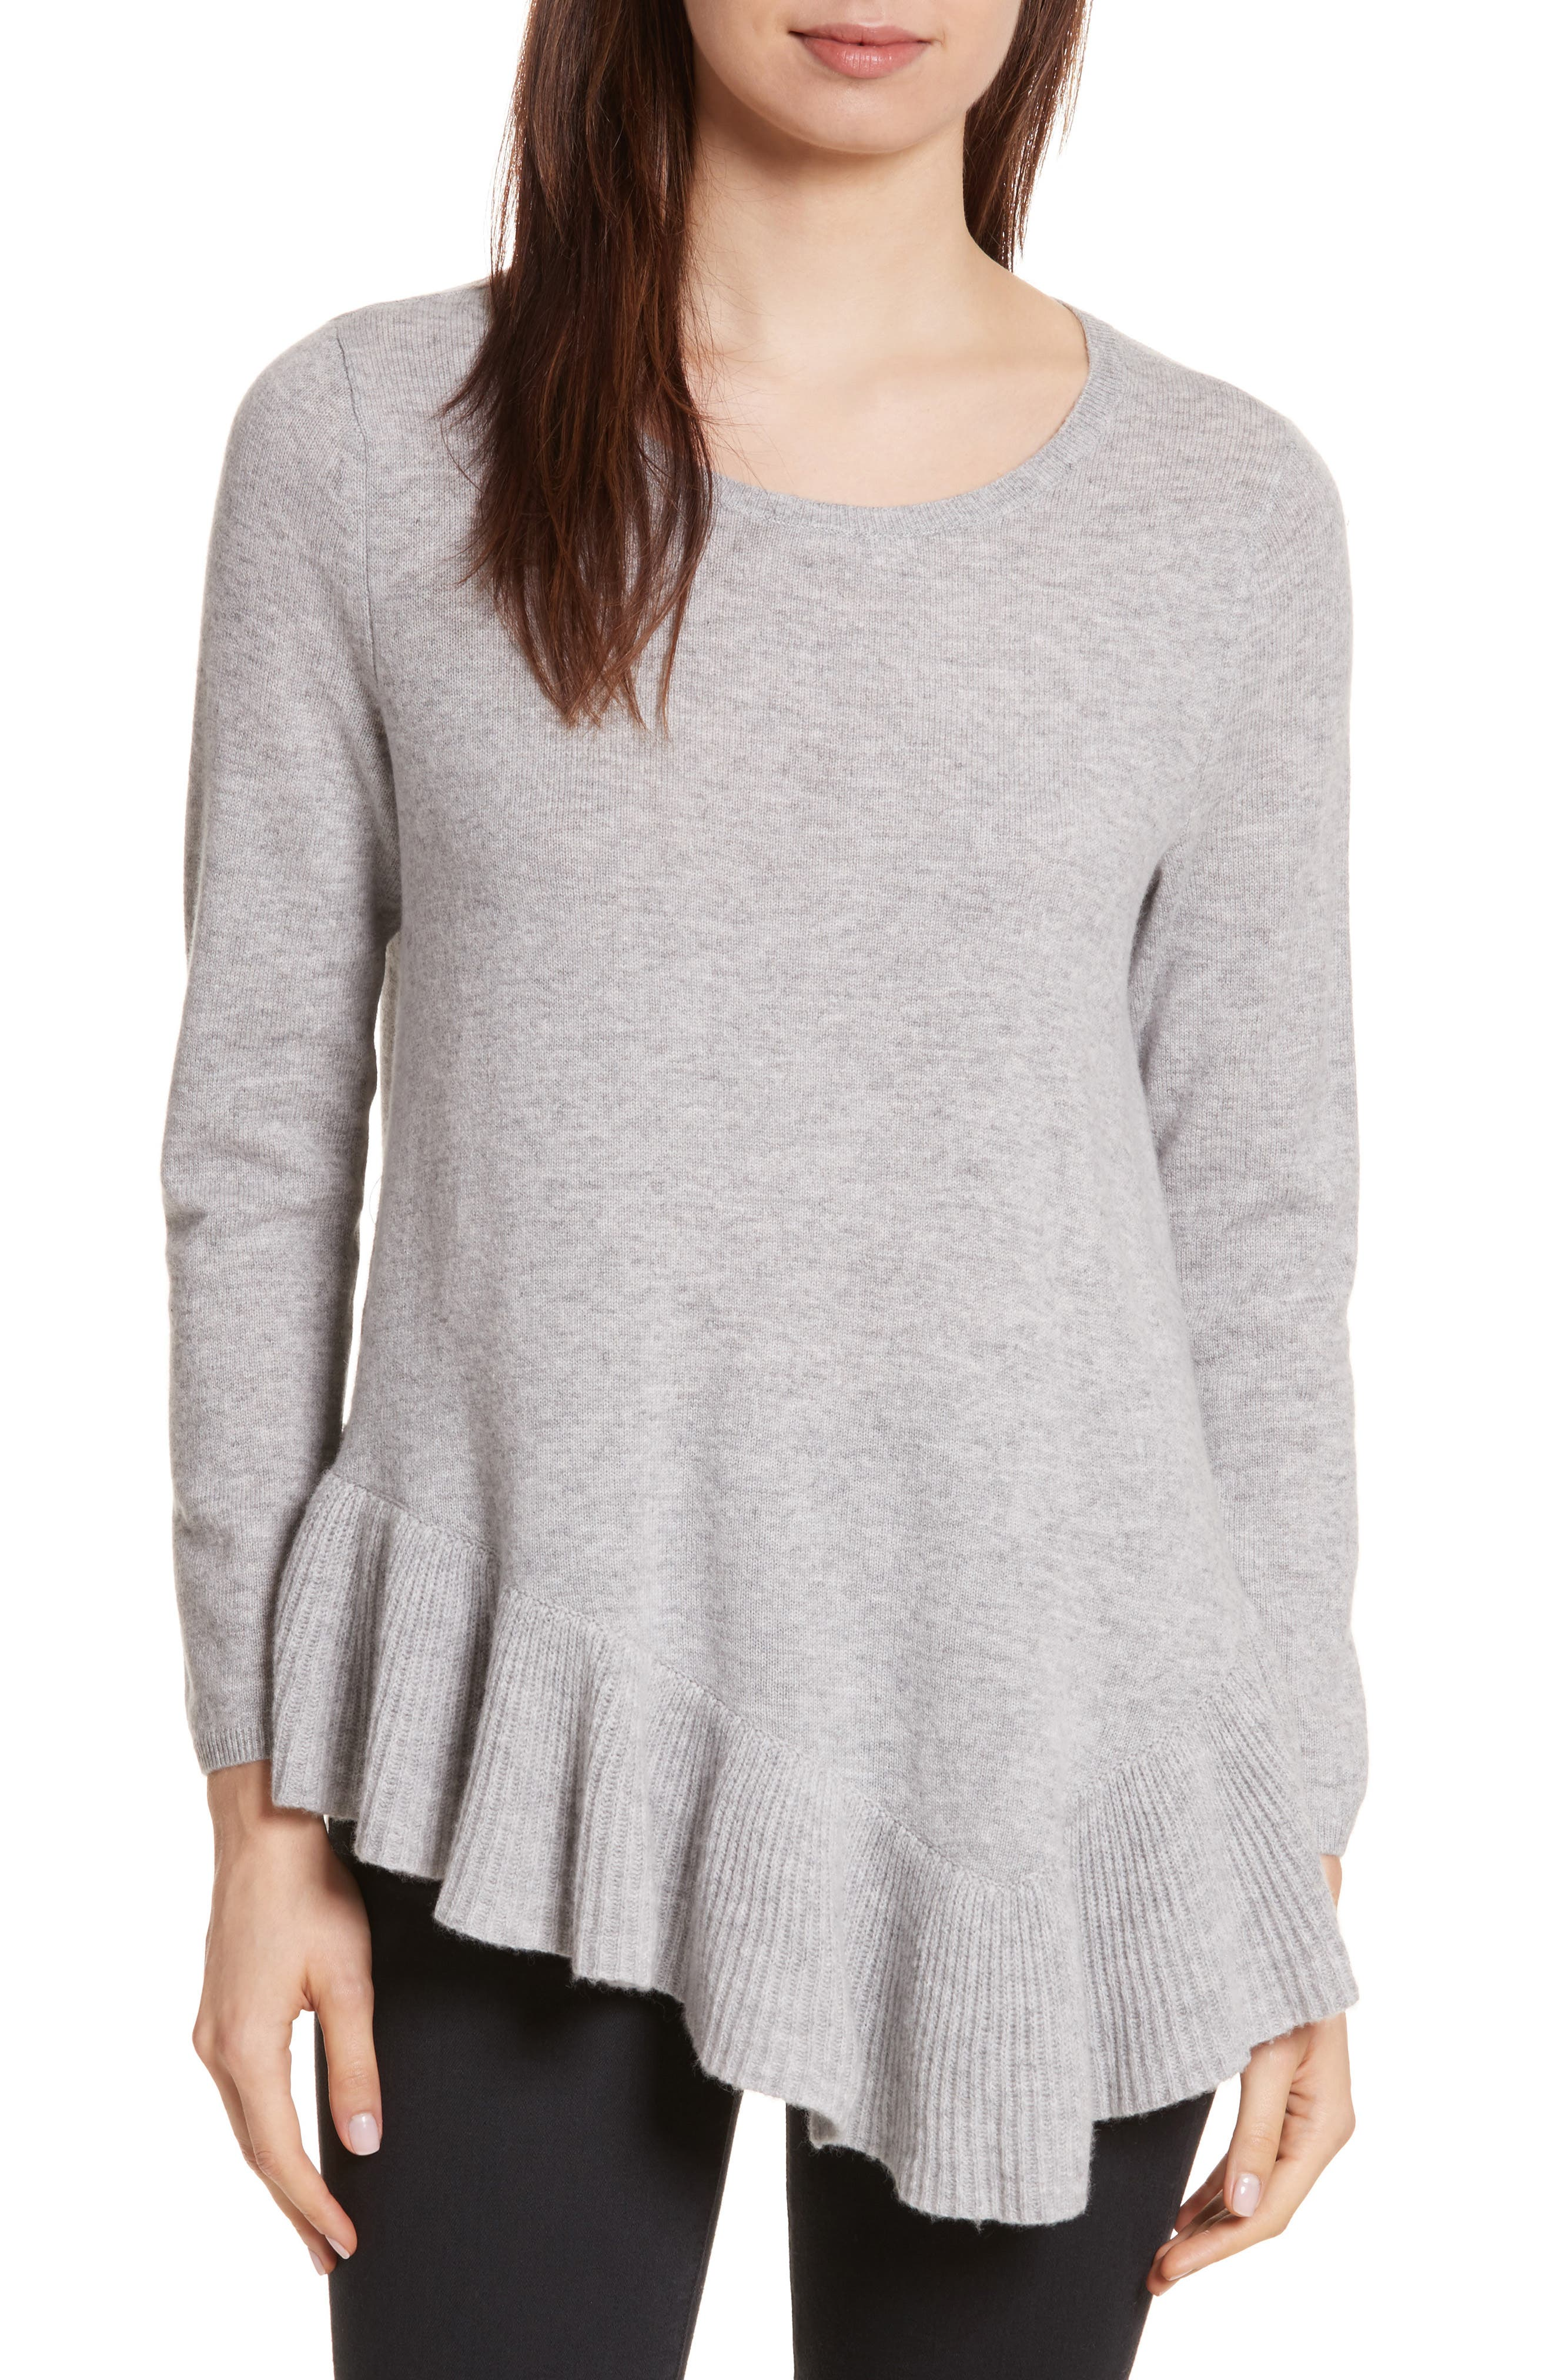 Alternate Image 1 Selected - Joie Tambrel N Wool & Cashmere Asymmetrical Sweater Tunic